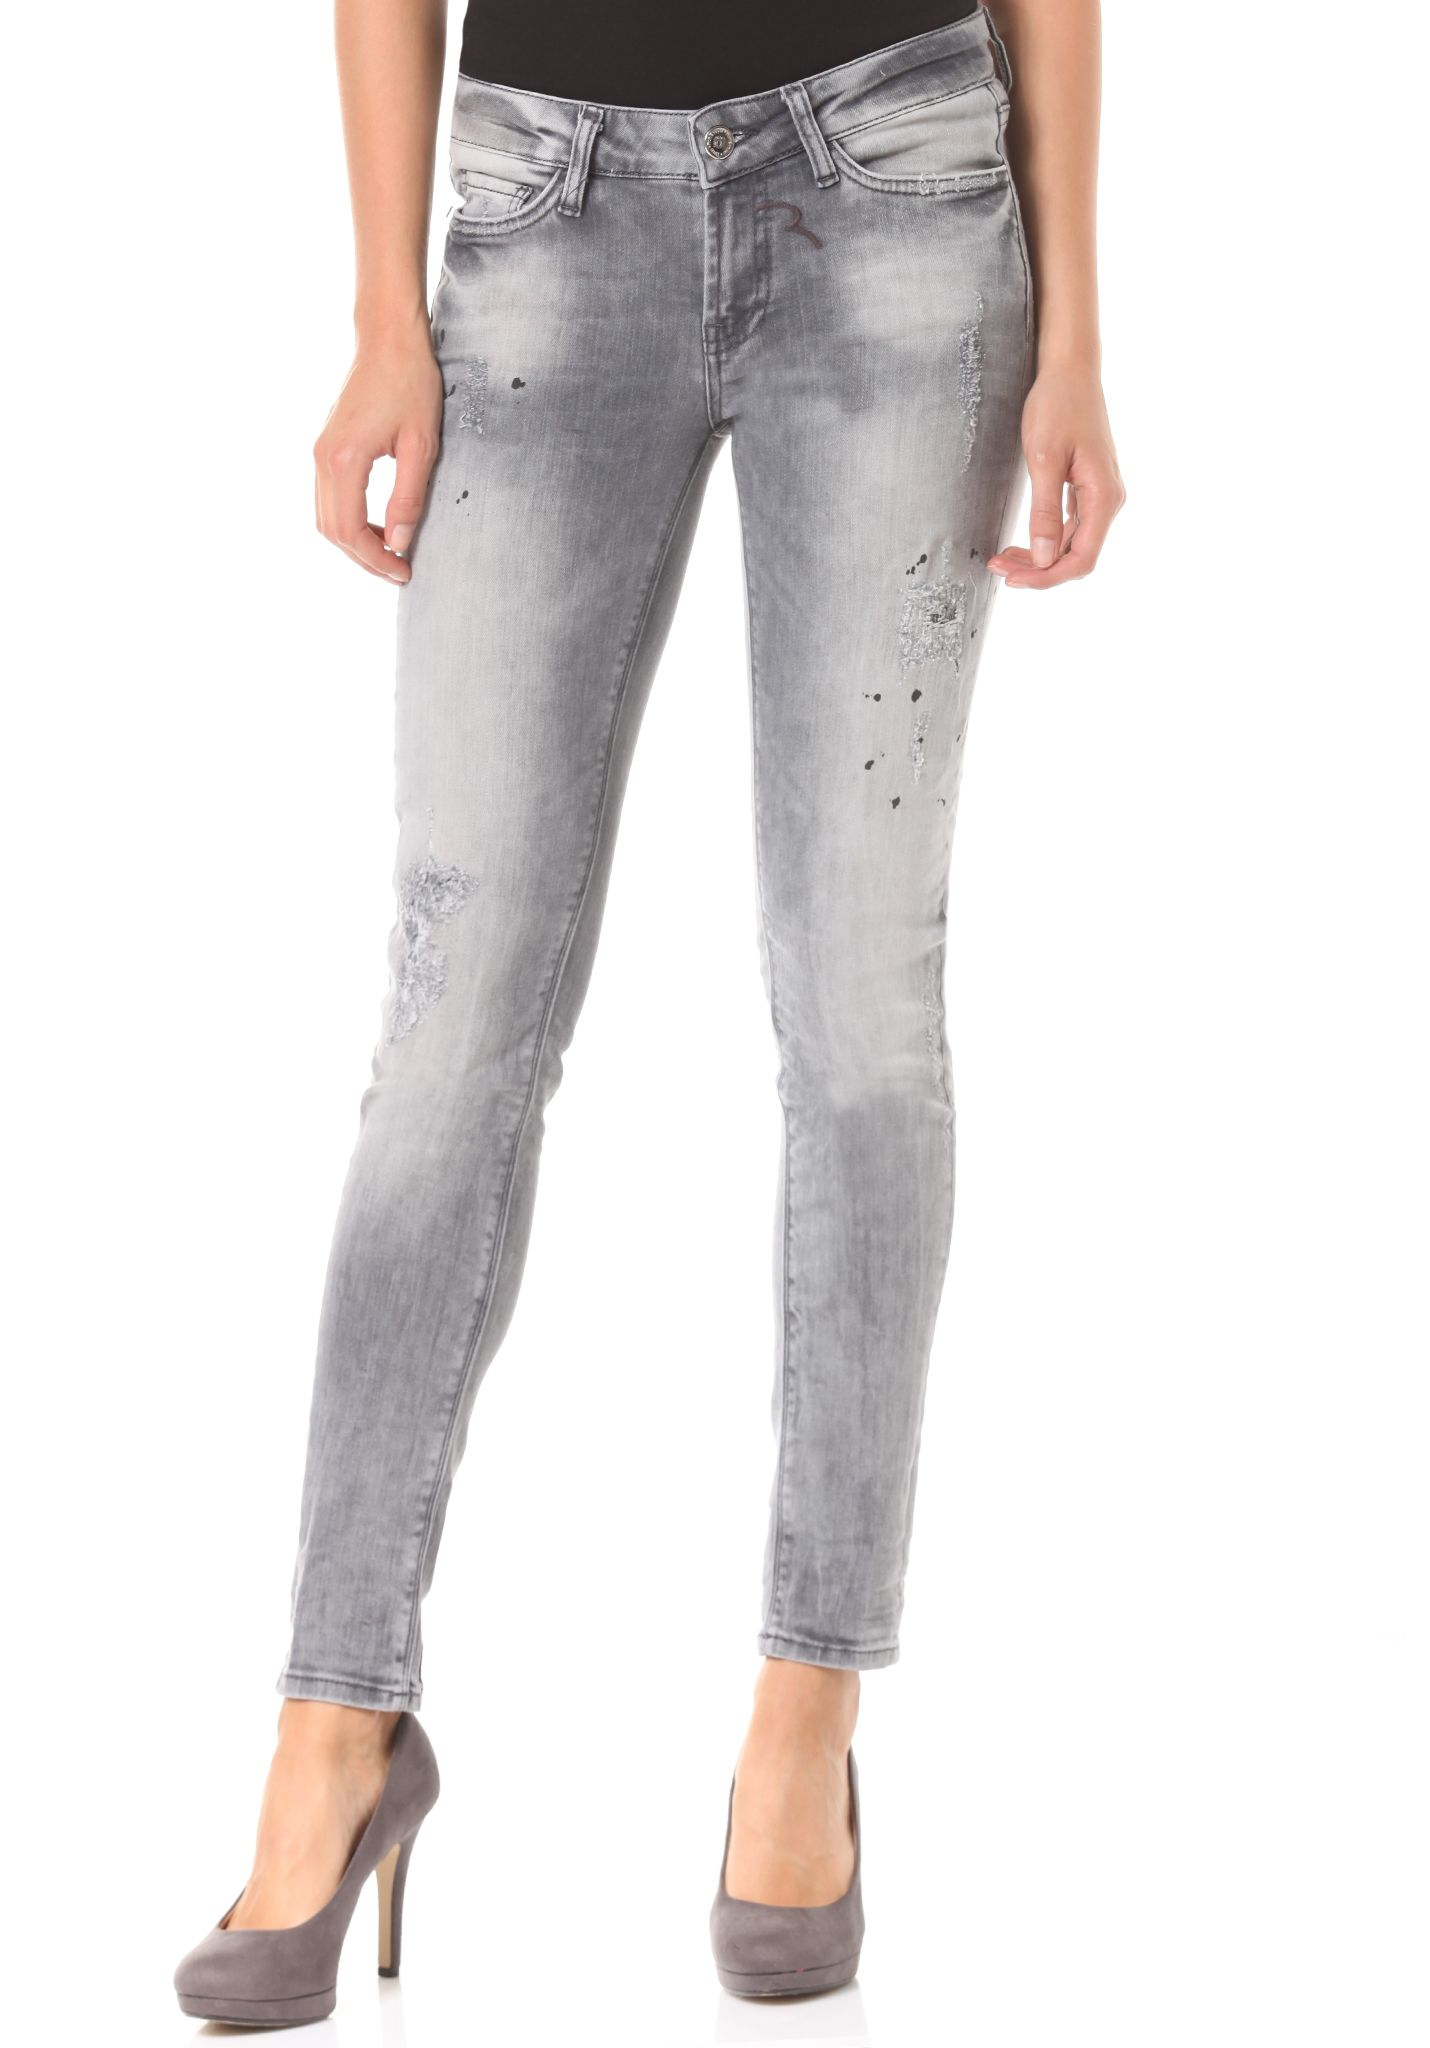 Rich   Royal Super Skinny - Jeans für Damen - Grau - Planet Sports 1c69114ac6